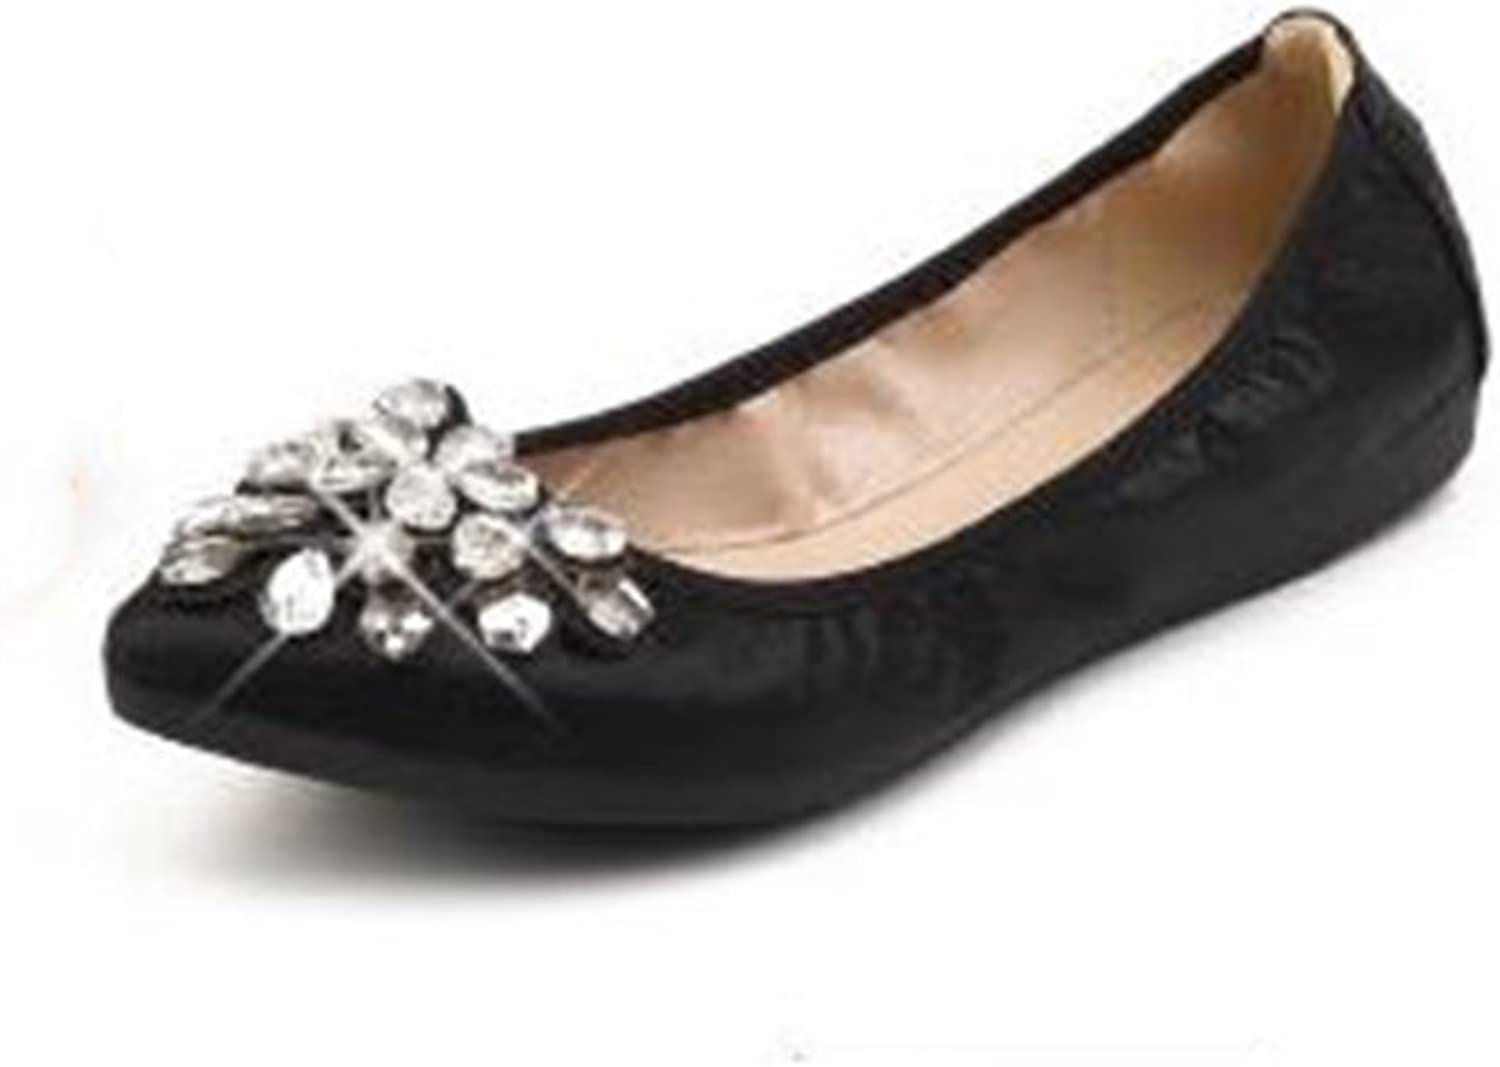 COLOV Womens Foldable Soft Pointed Toe Ballet Flats Rhinestone Comfortable Slip on Flat shoes